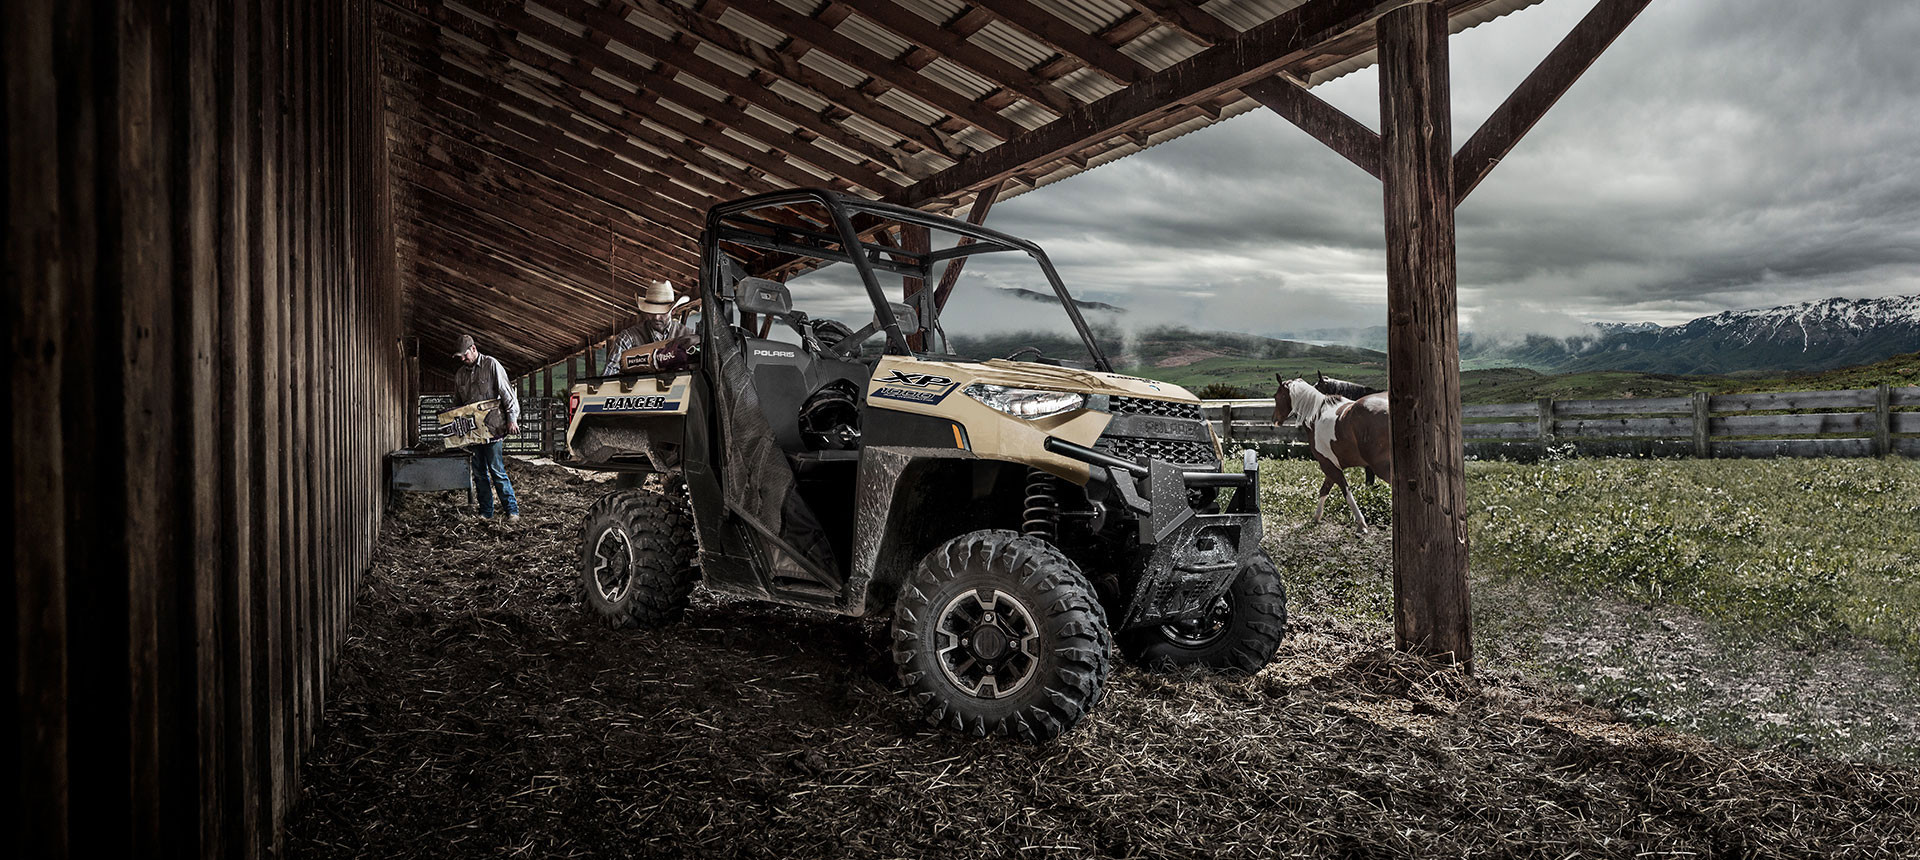 2020 RANGER® XP 1000 High Lifter Edition Instagram image 4